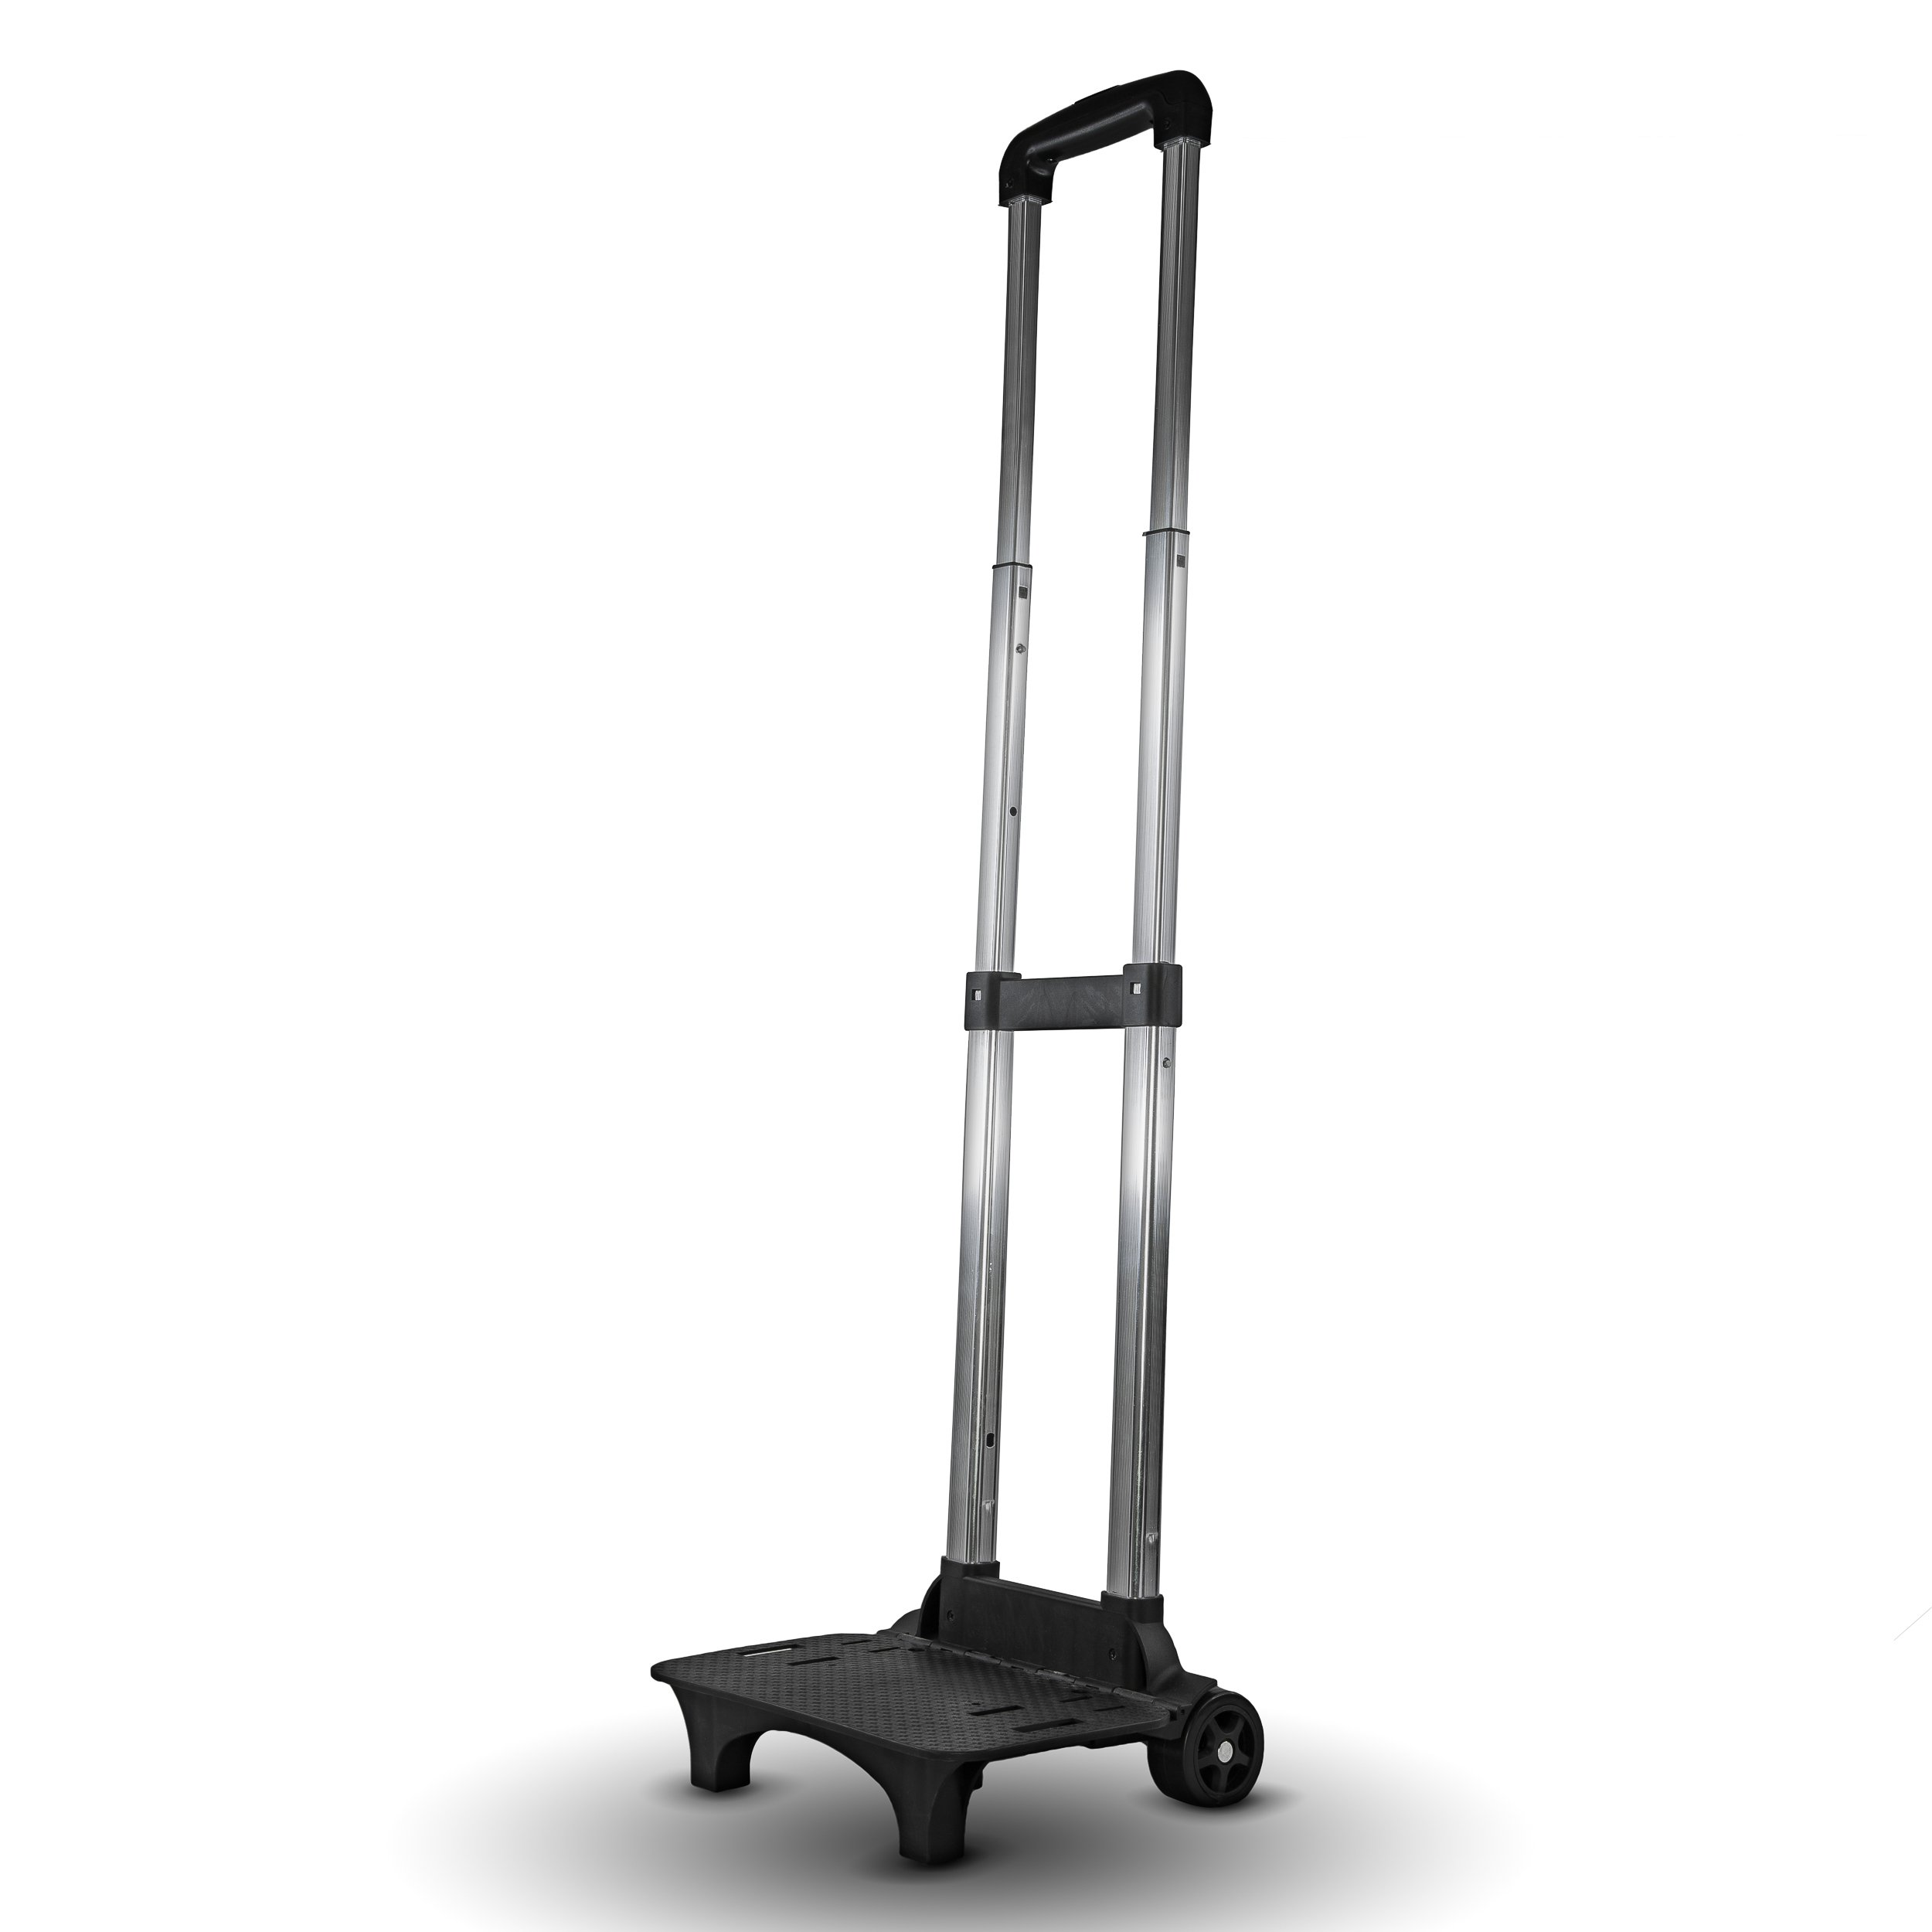 SSE Folding Compact Lightweight Premium Durable Luggage Cart - Travel Trolley